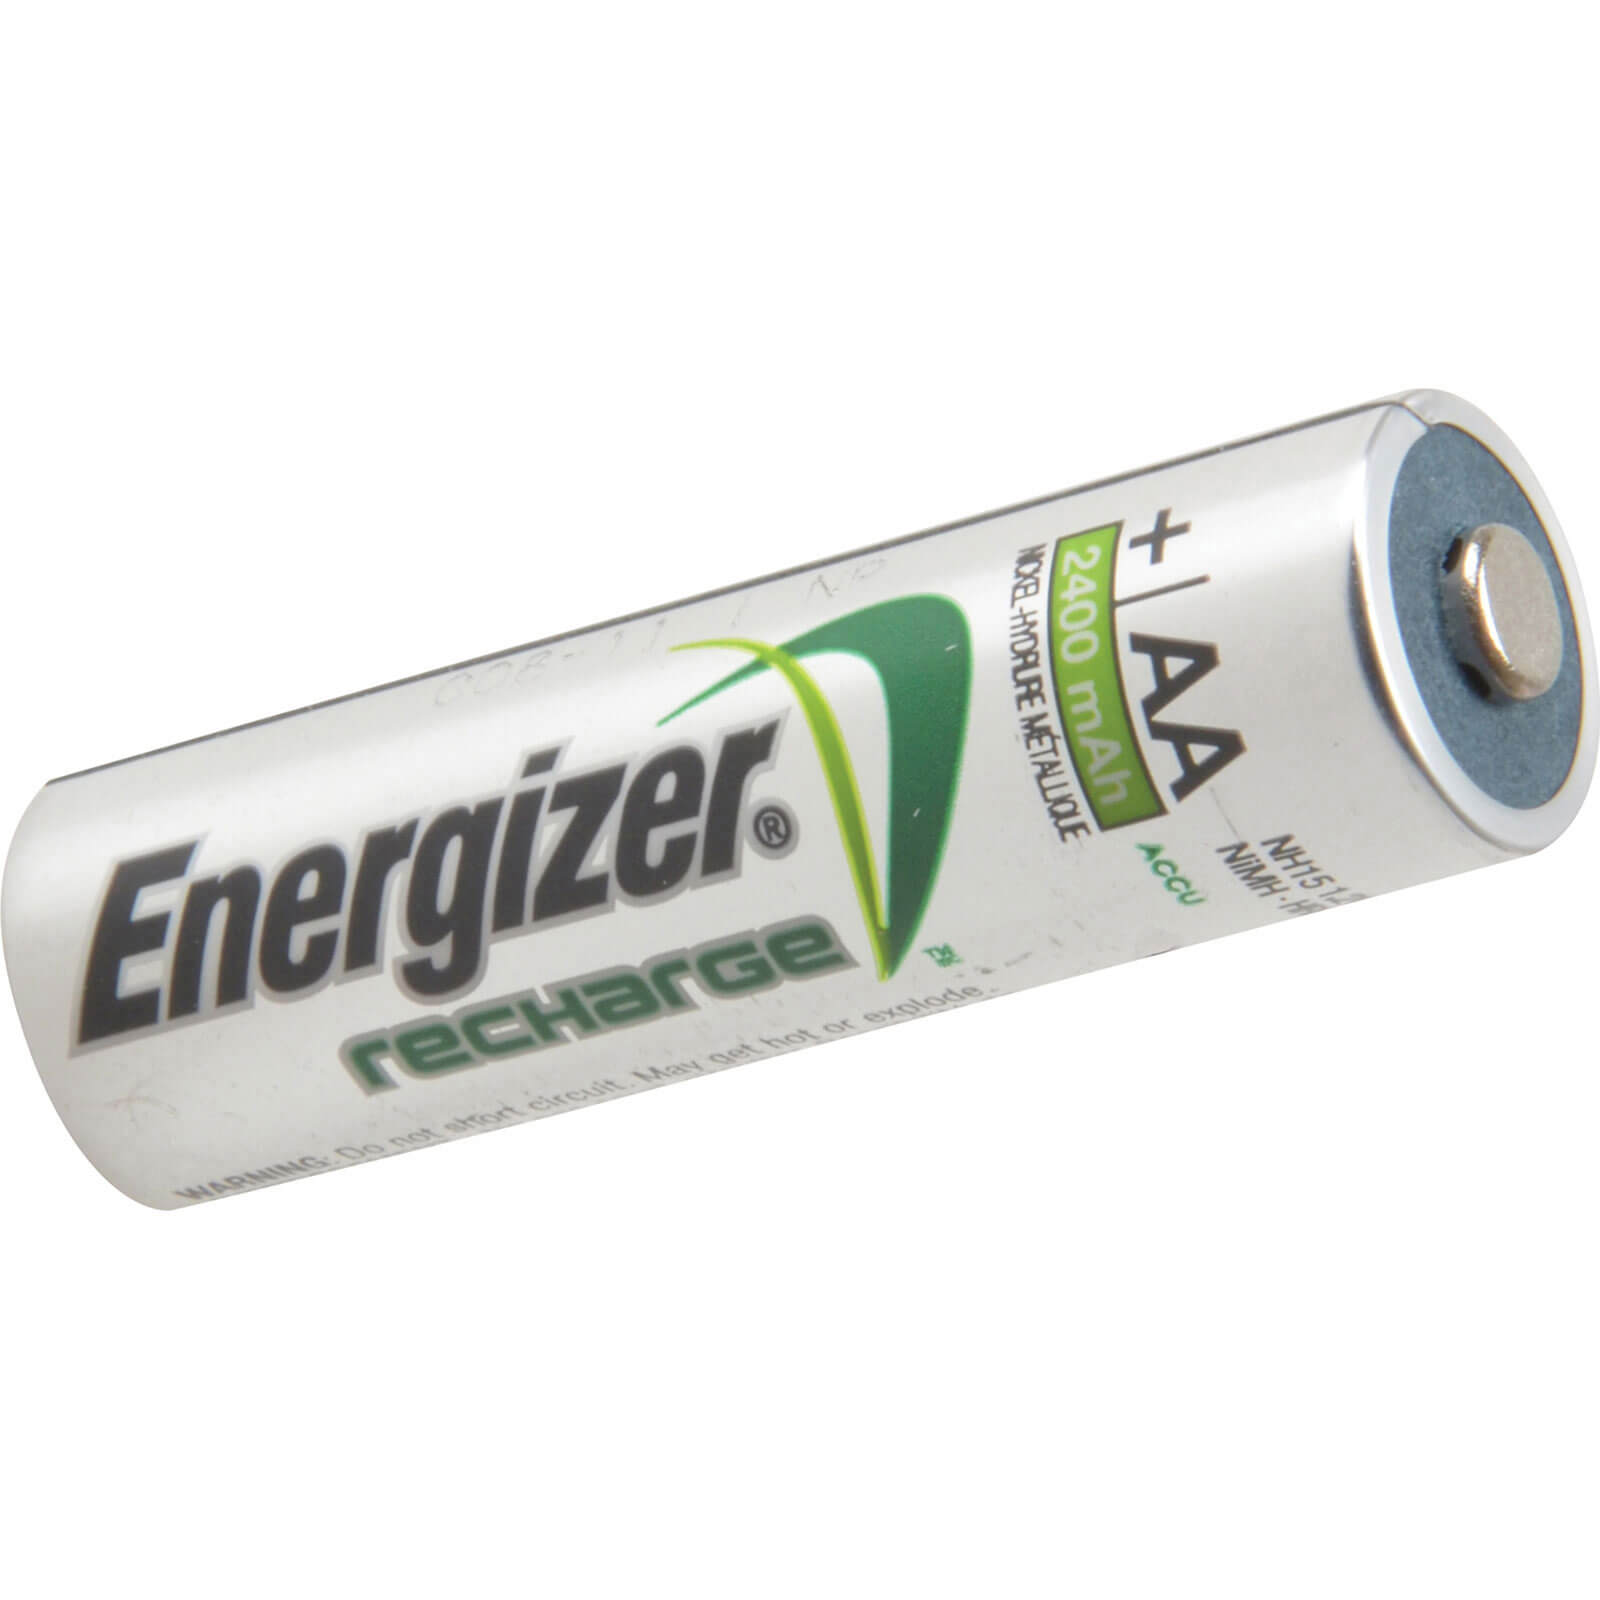 AA Rechargeable Extreme Batteries